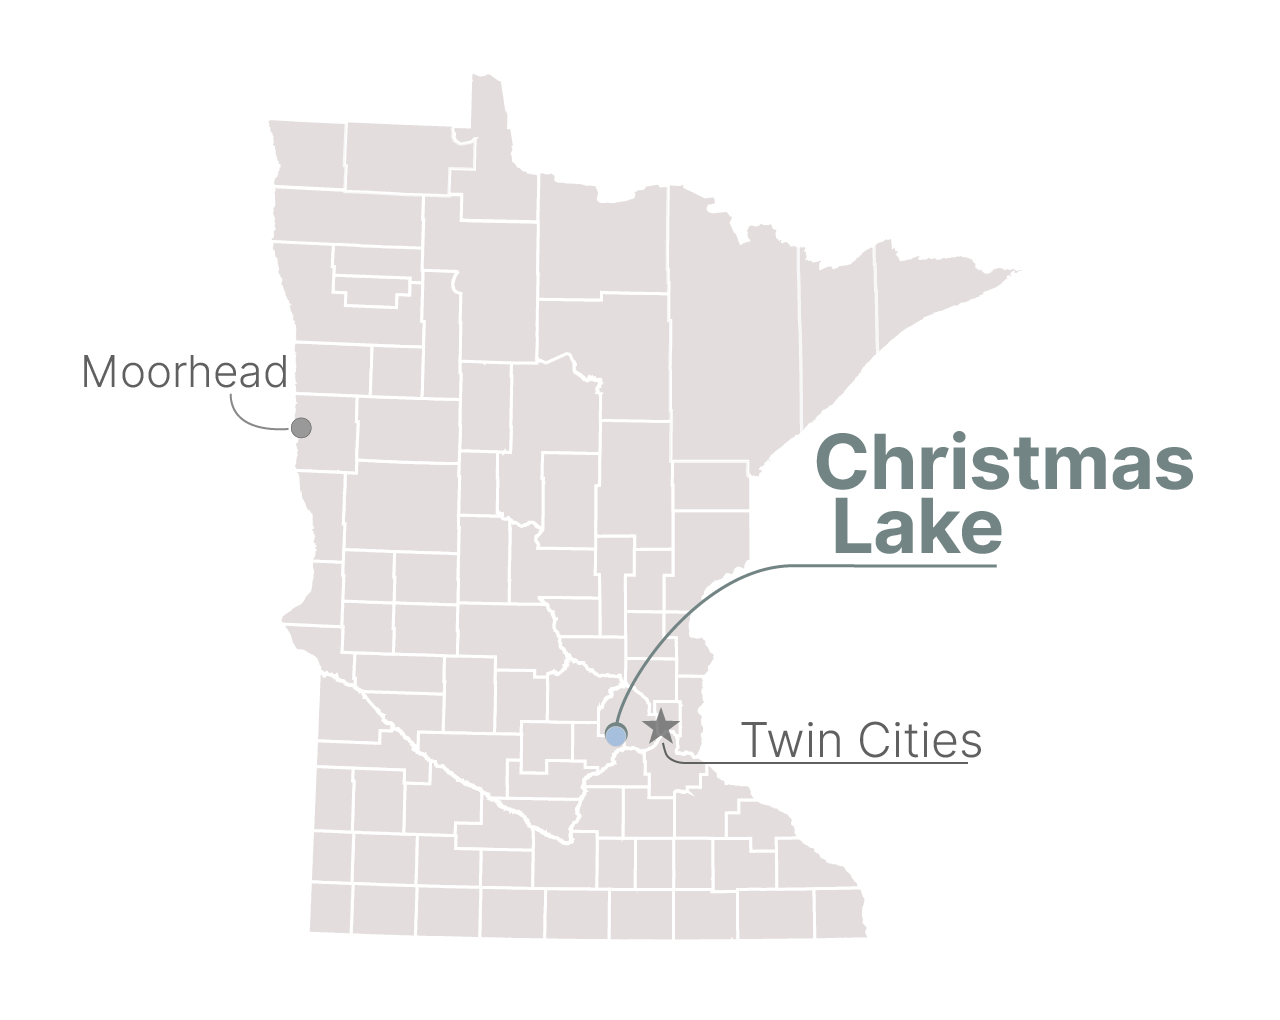 A locator map of Christmas Lake in Chanhassen, Minn.